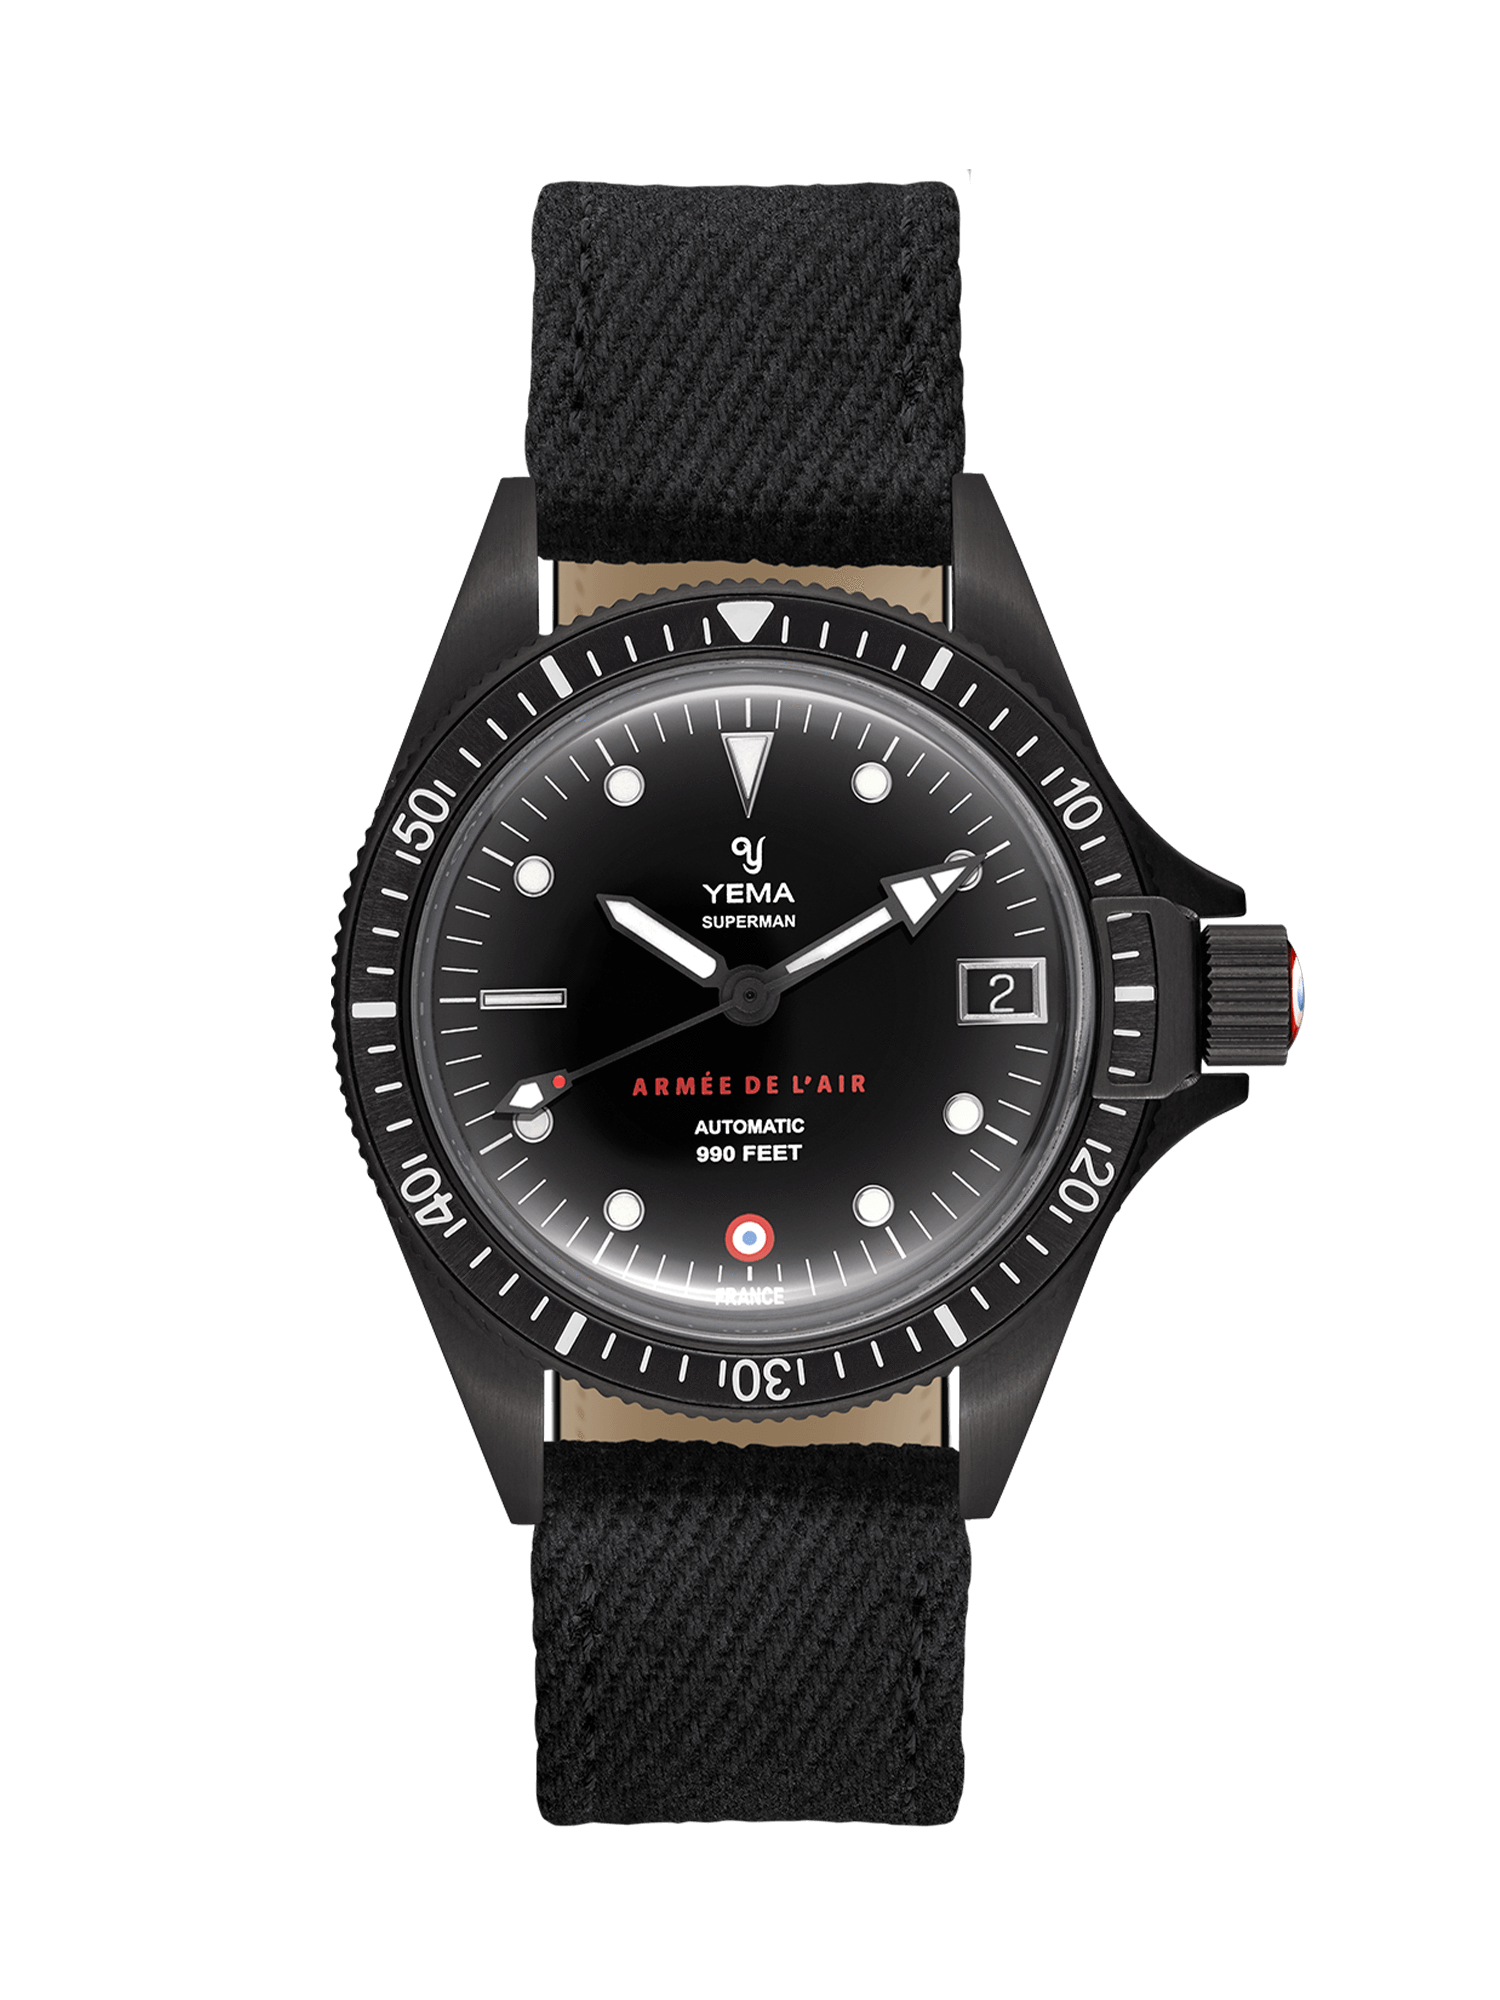 YEMA Superman French Air Force Black Limited Edition, Embossed markers, black canva watch strap.